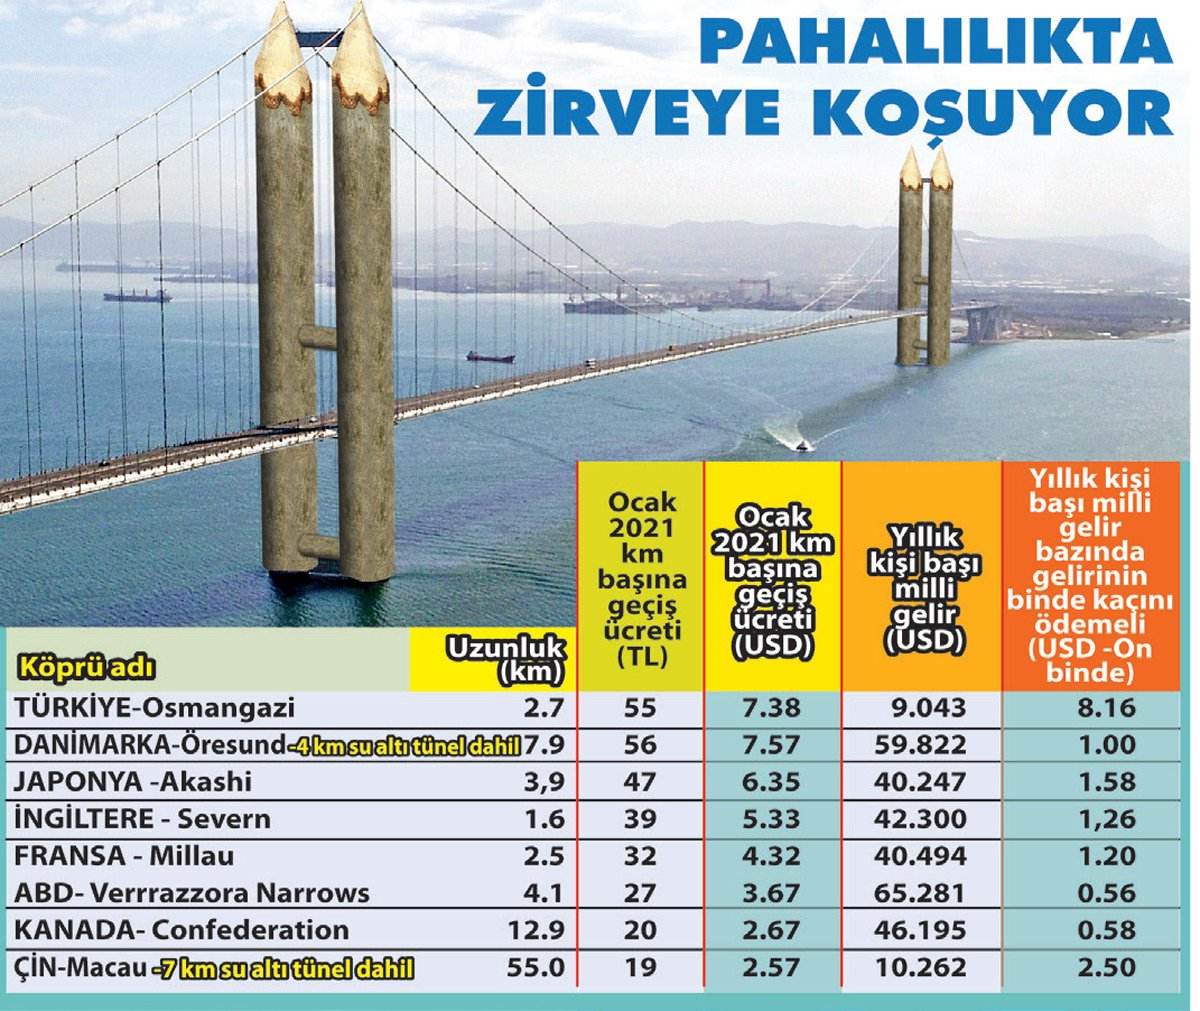 osmangazi is the second most expensive bridge in the world